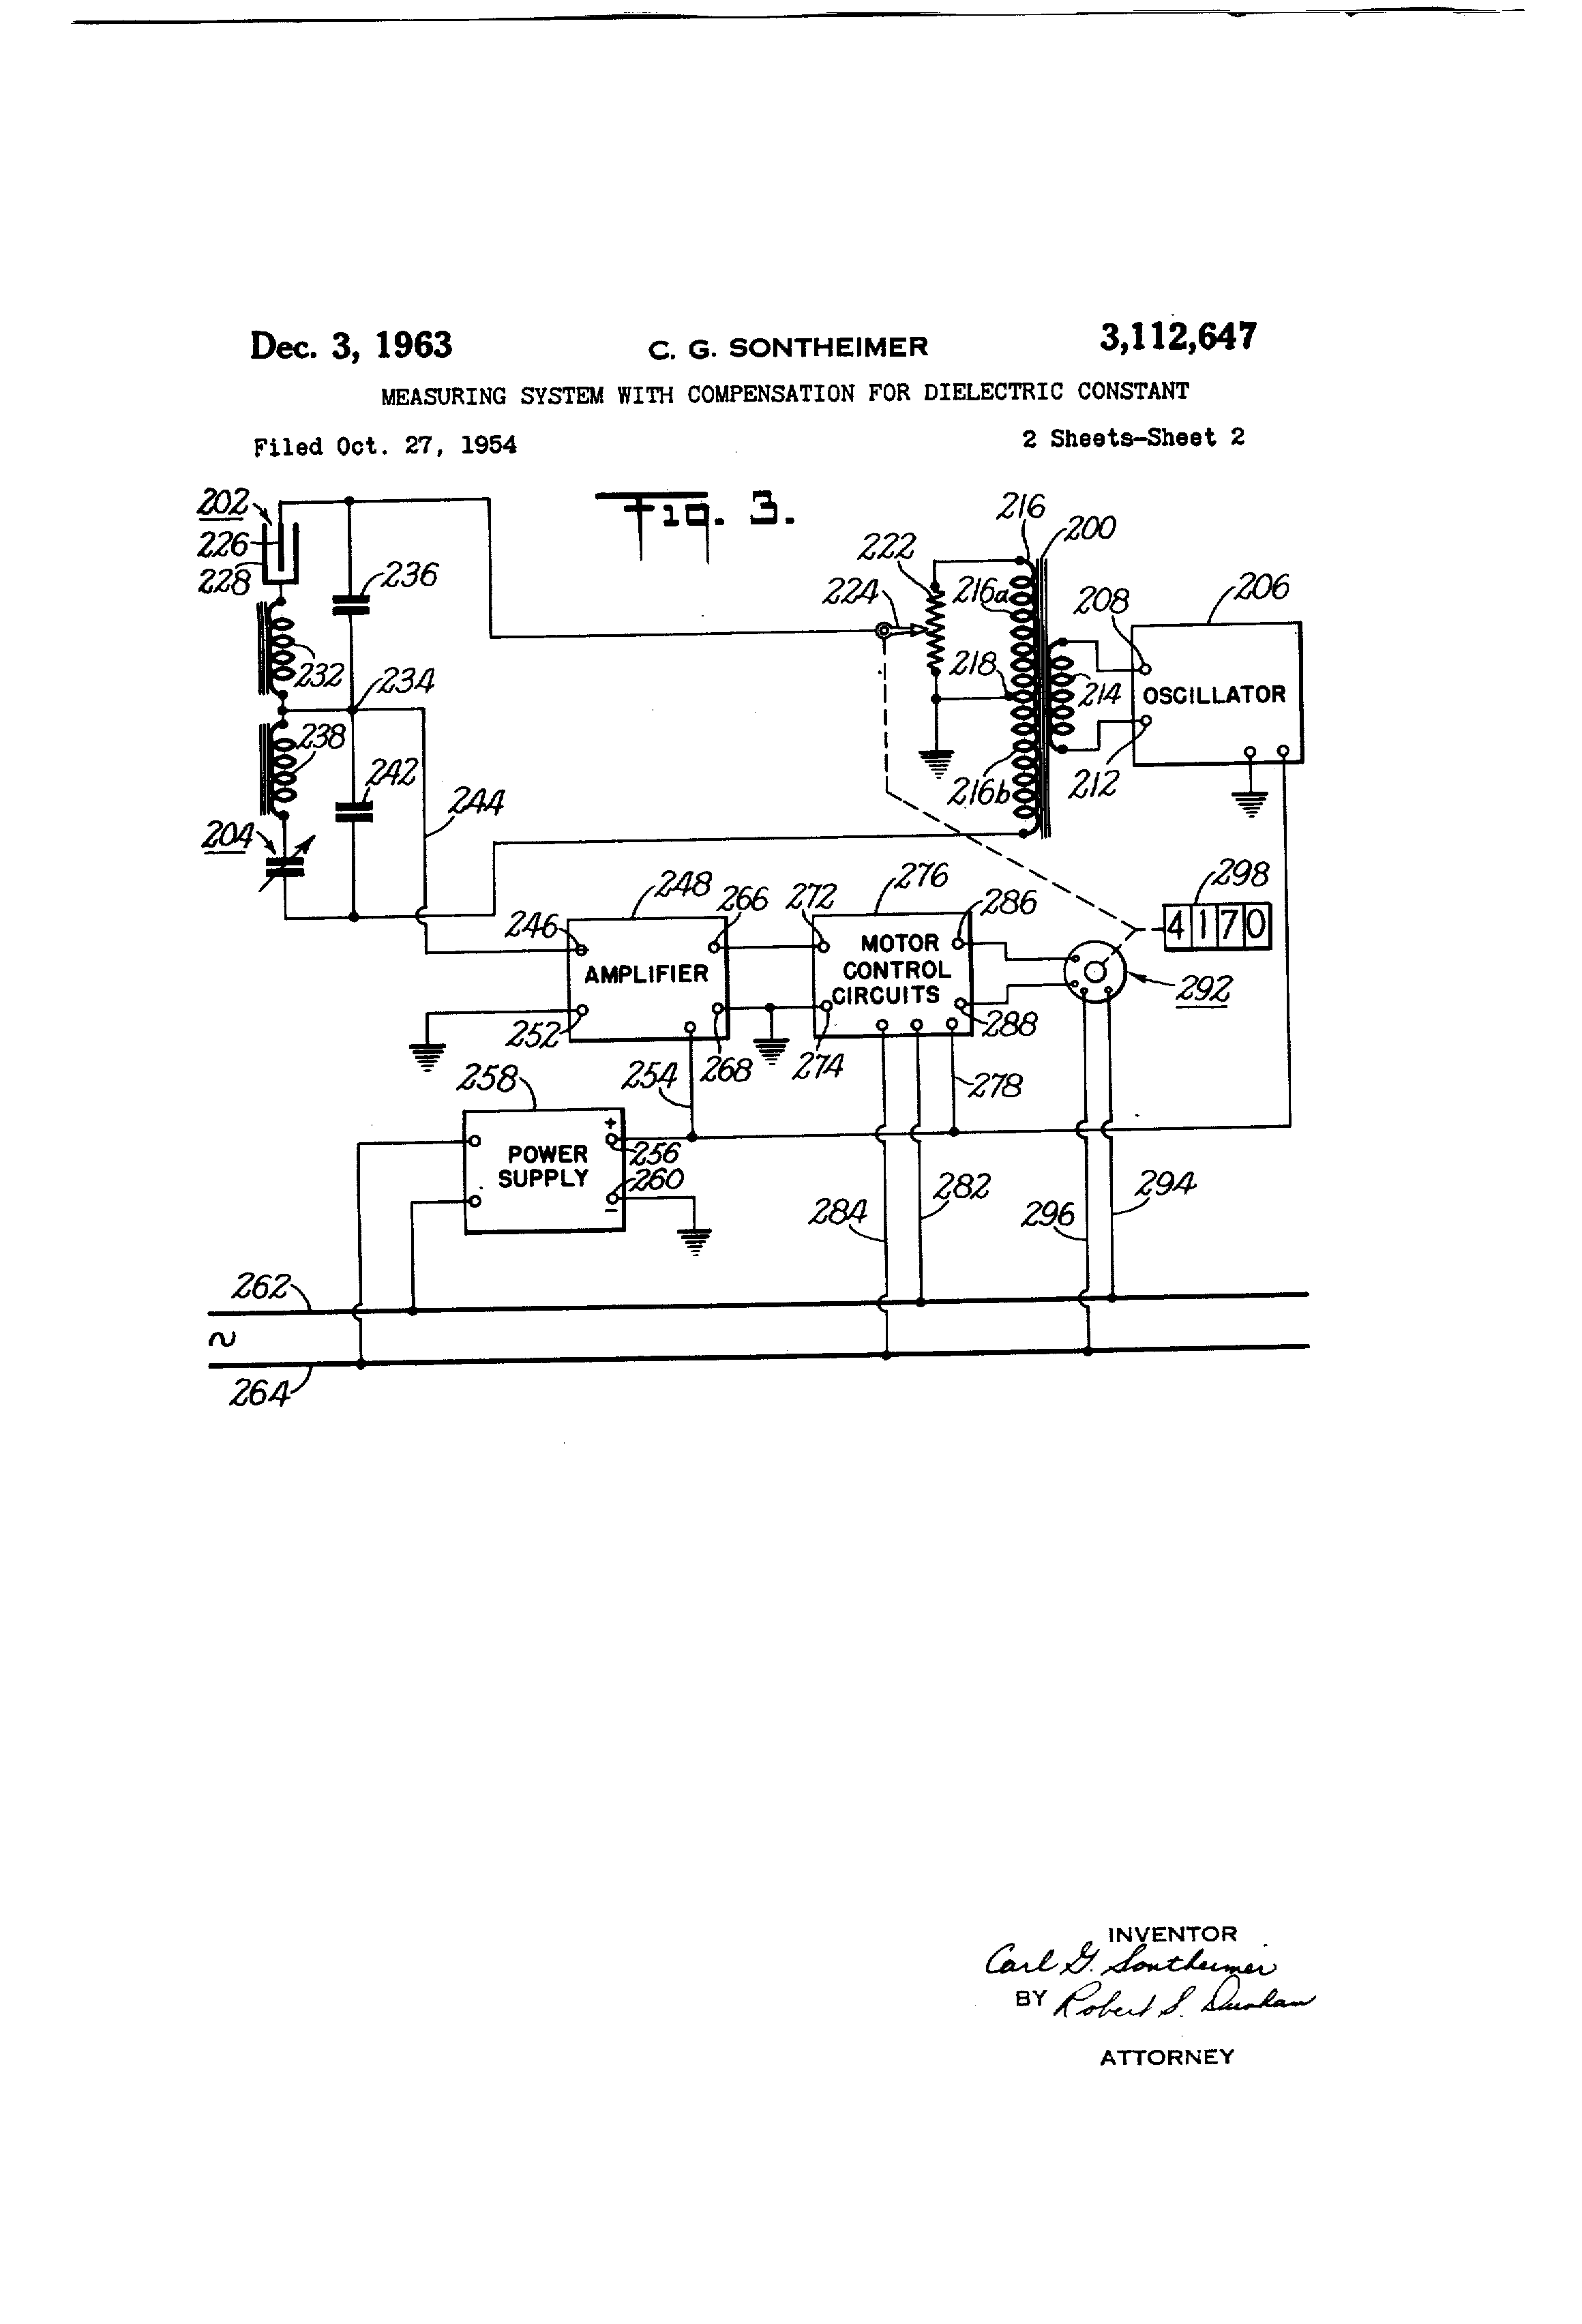 Patent Us3112647 Measuring System With Compensation For Dielectric Measurement By Change In Constant Using Resonance Circuit Drawing